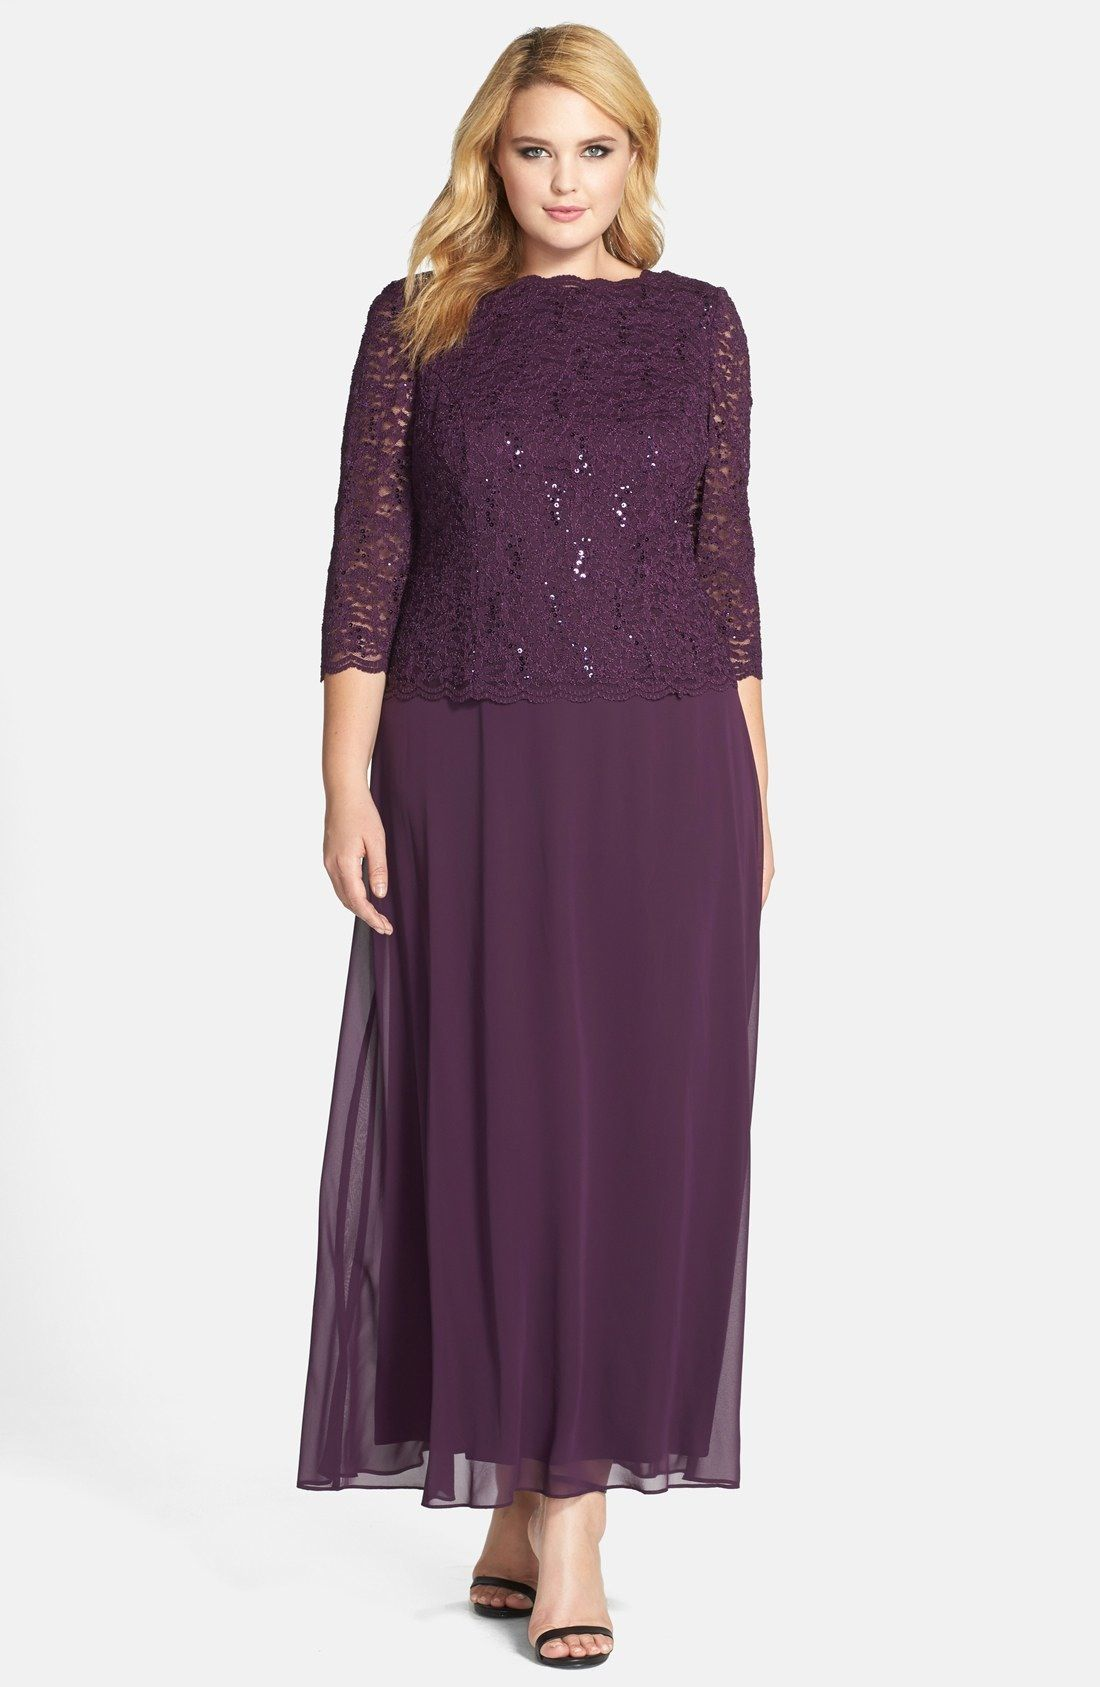 Alex Evenings Embellished Lace | Wedding outfit | Pinterest